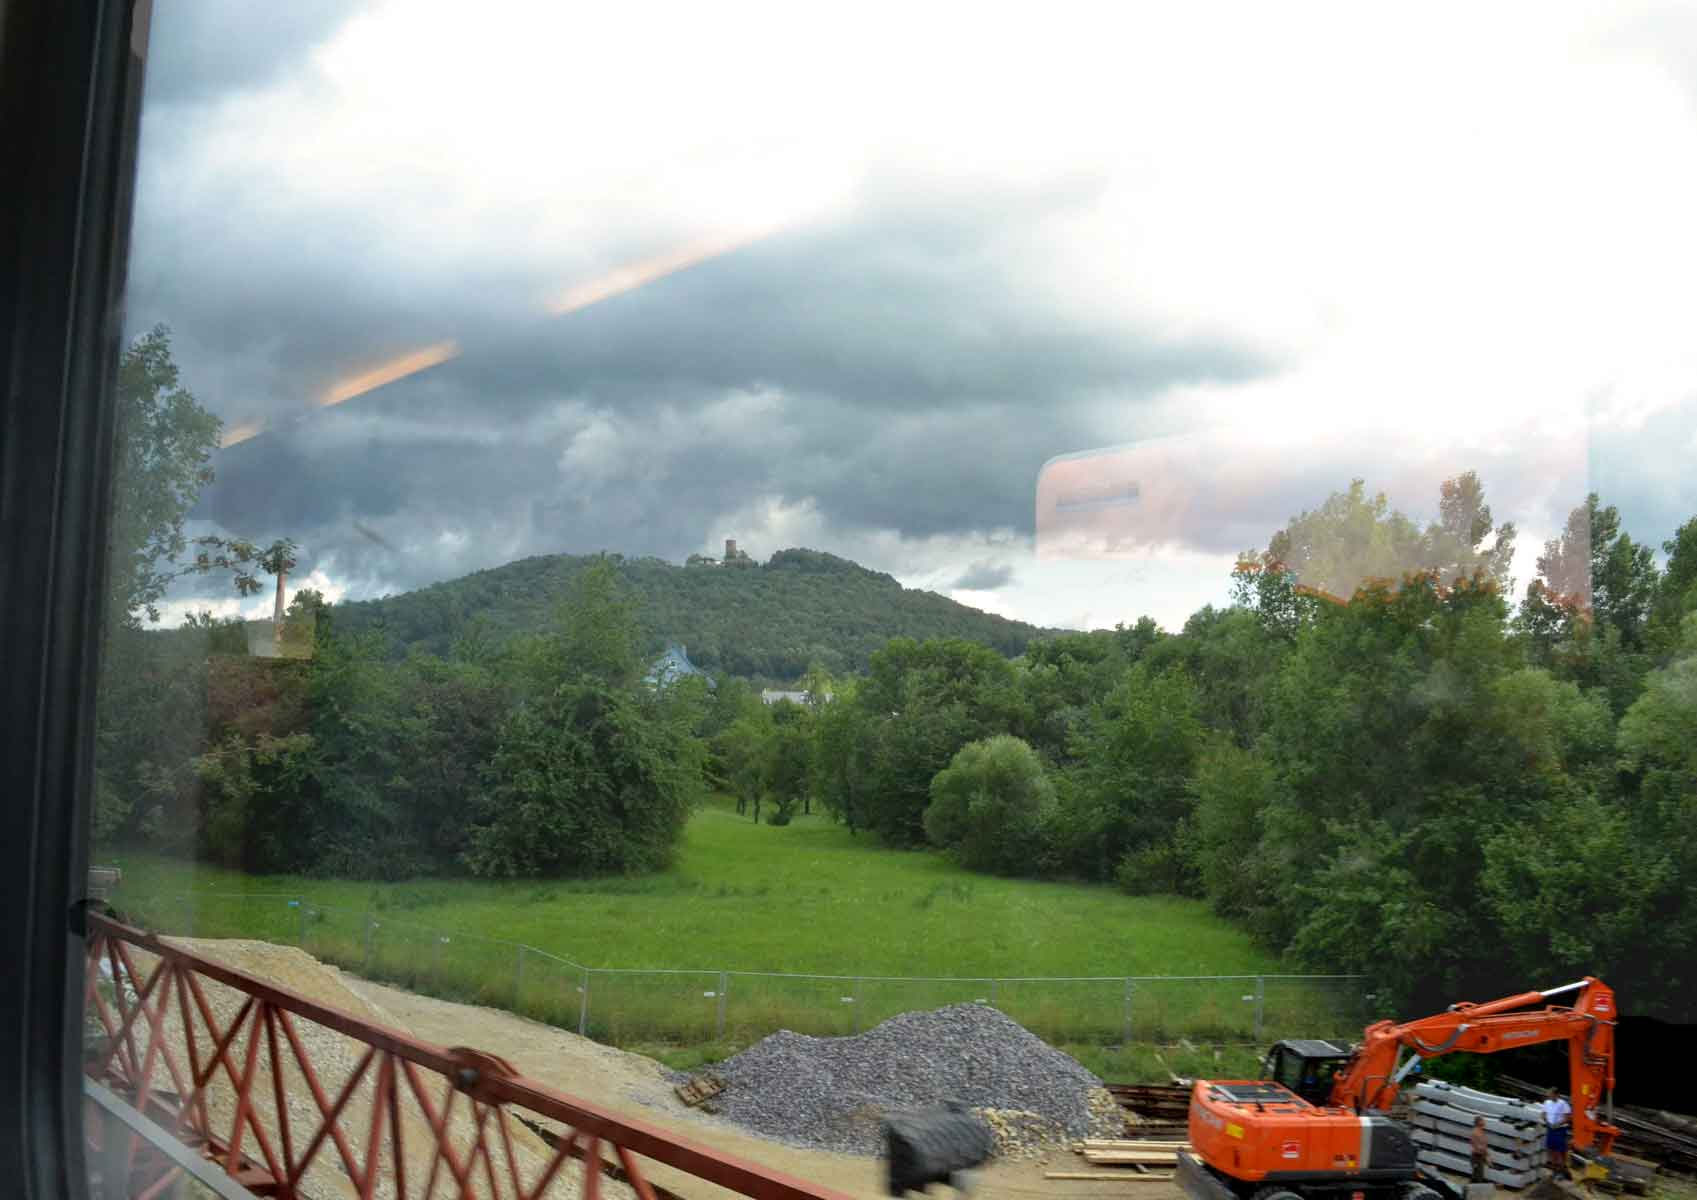 Watching construction work from train window while traveling in Germany. Image©gunjanvirk